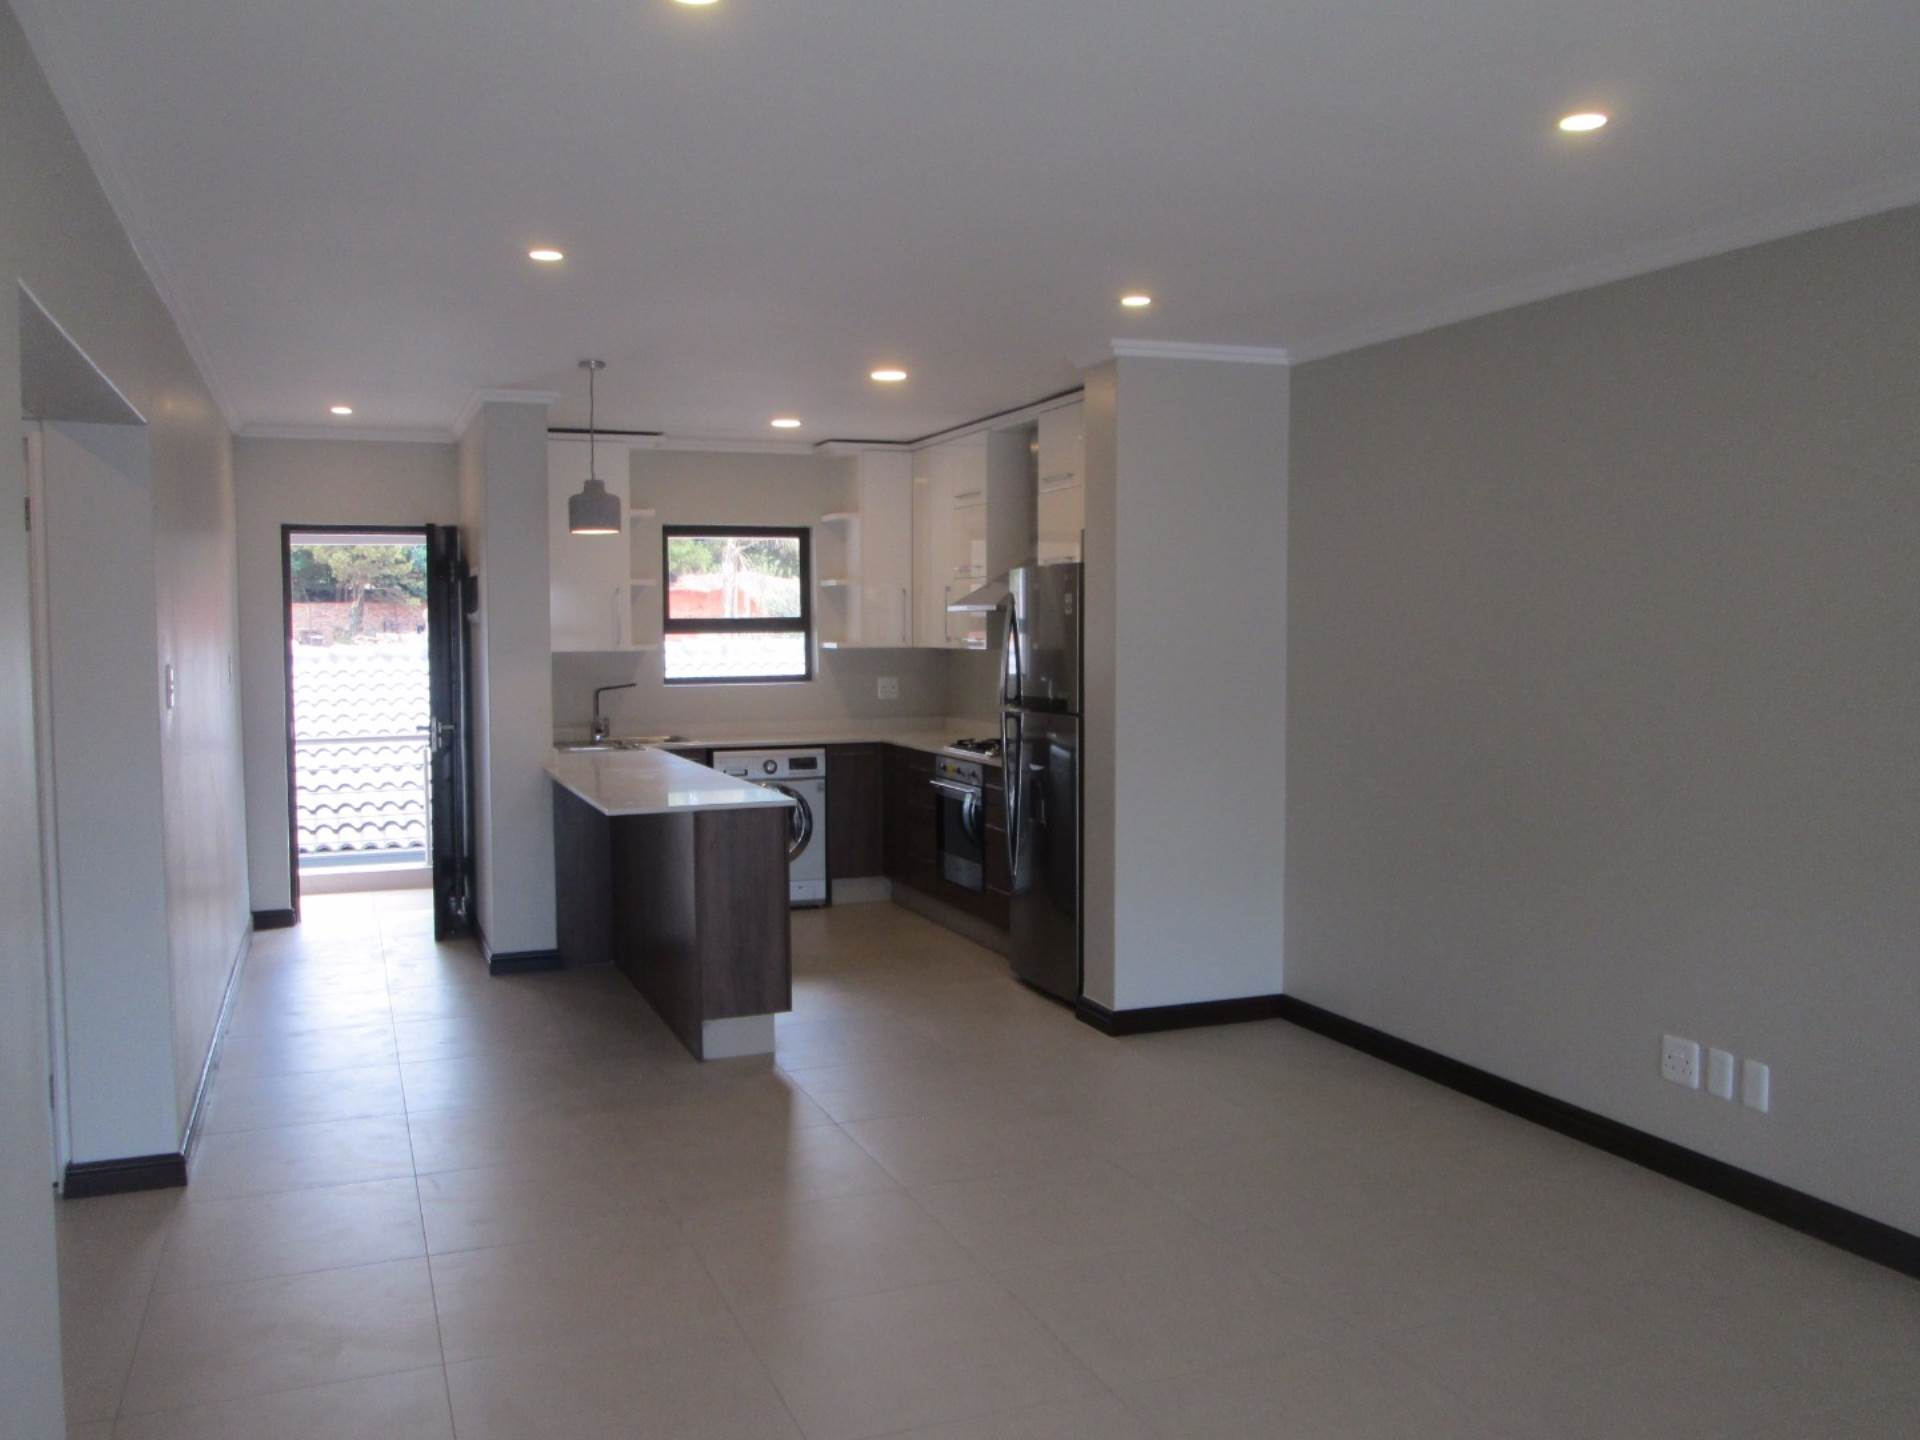 2 BedroomApartment To Rent In Bedfordview